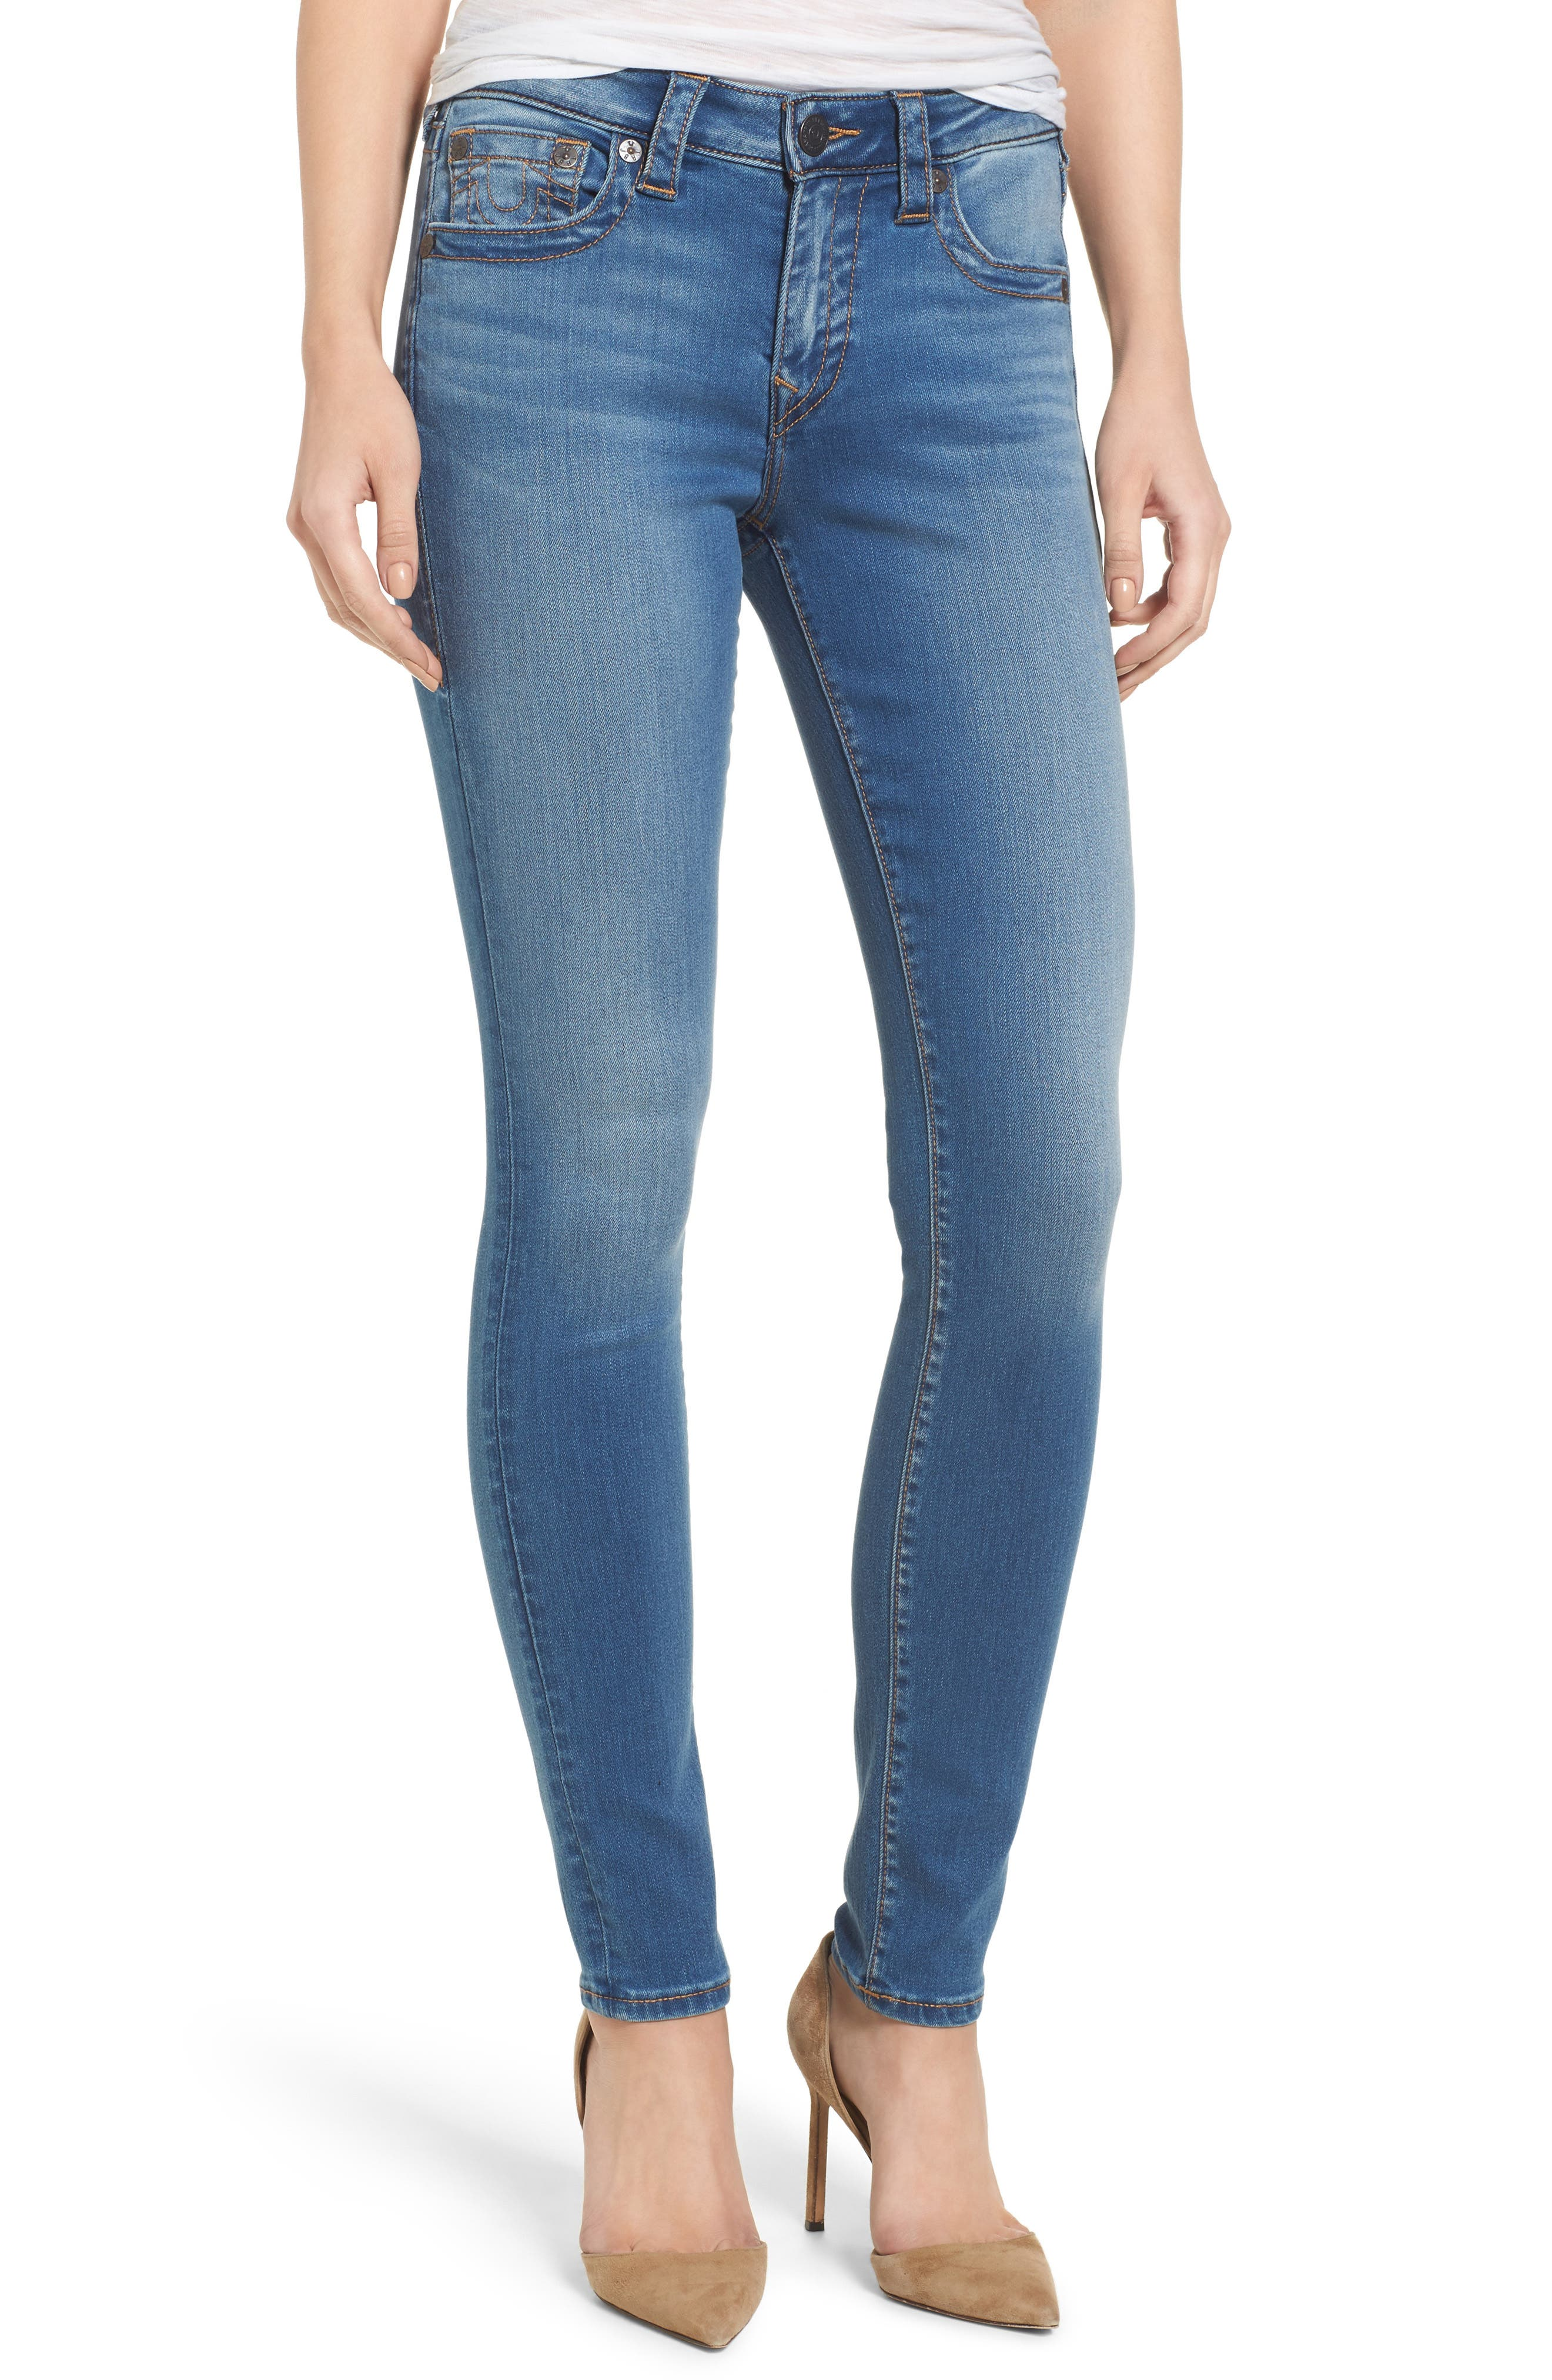 Alternate Image 1 Selected - True Religion Brand Jeans Jennie Curvy Skinny Jeans (Nu Authentic Indigo)